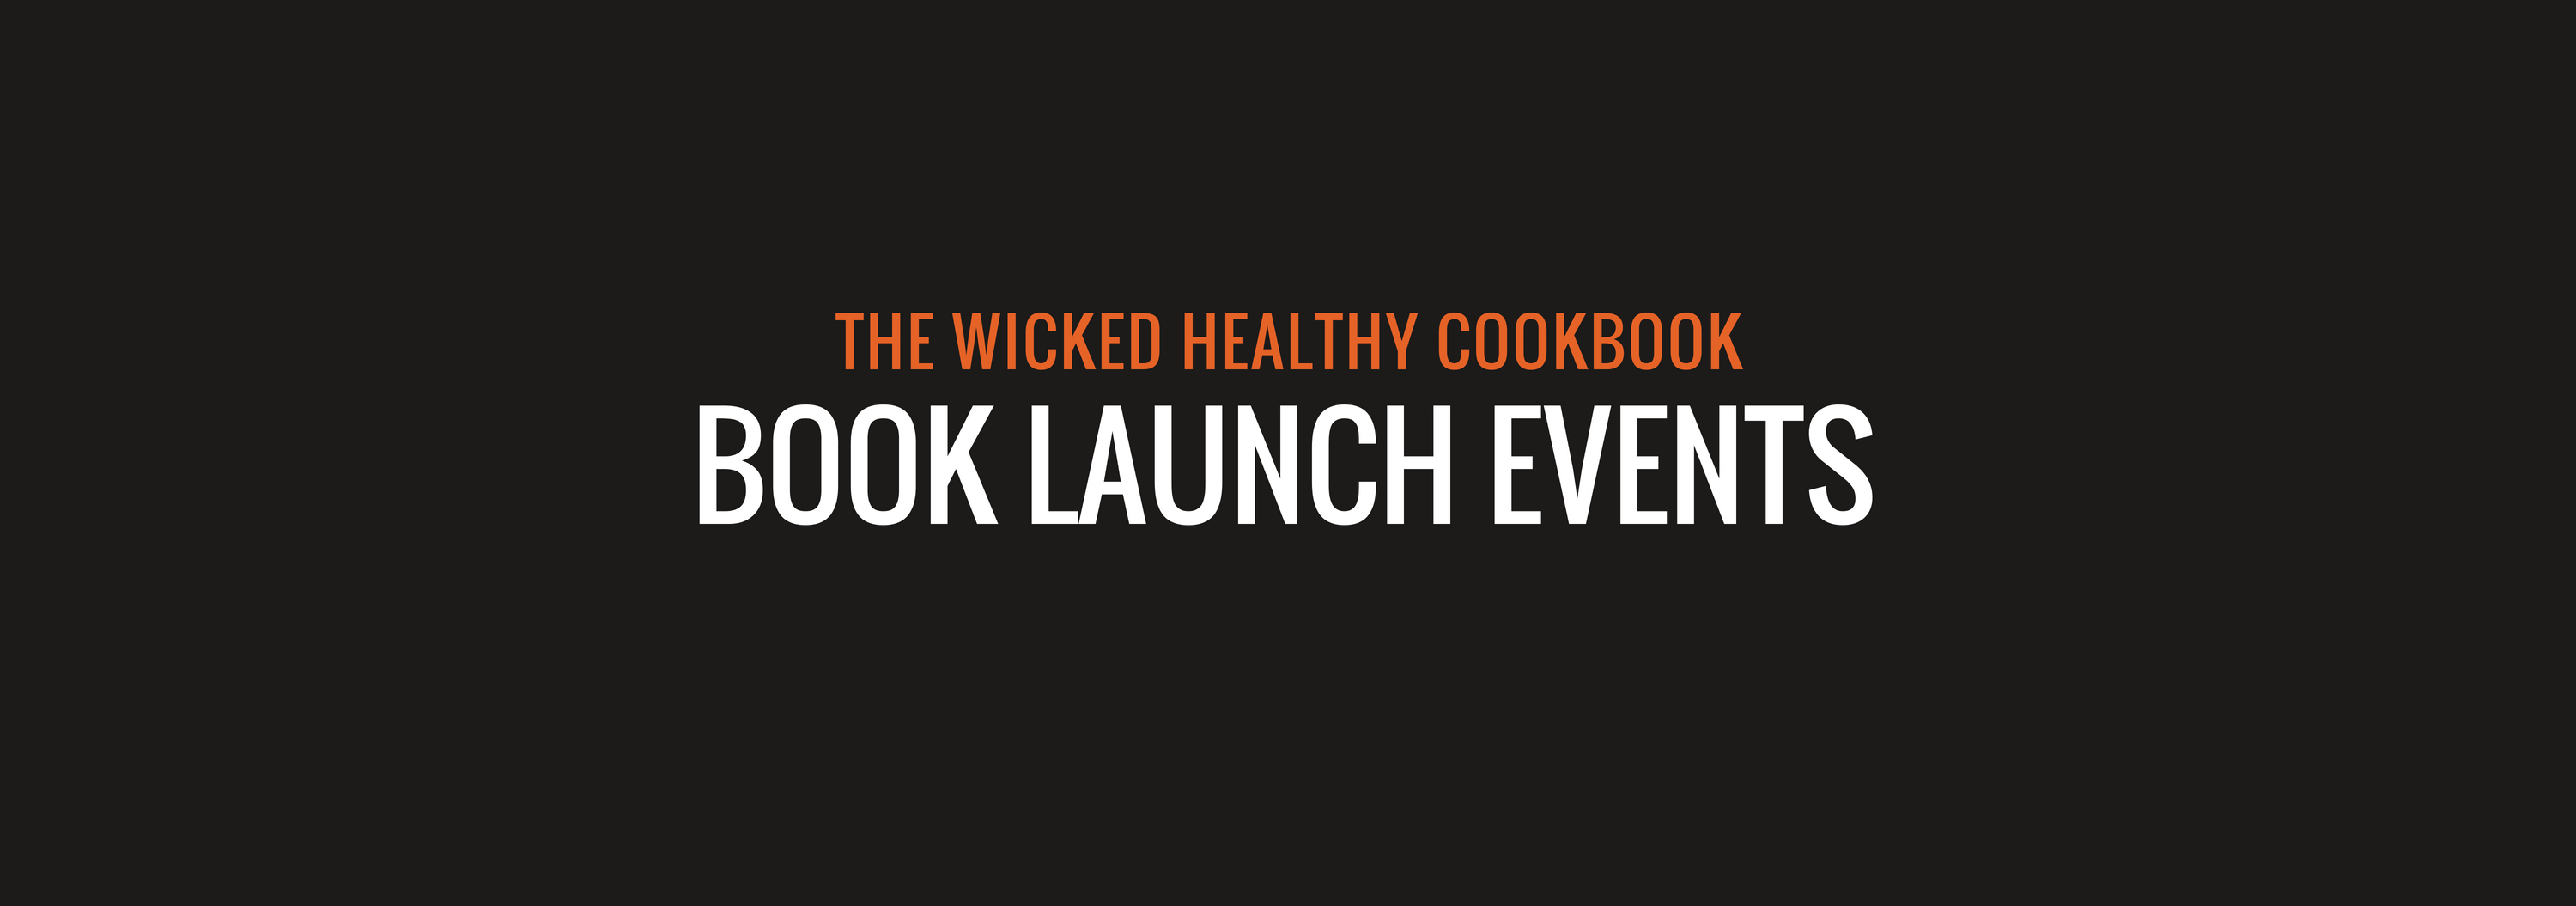 The Wicked Healthy Cookbook - Book Launch Events